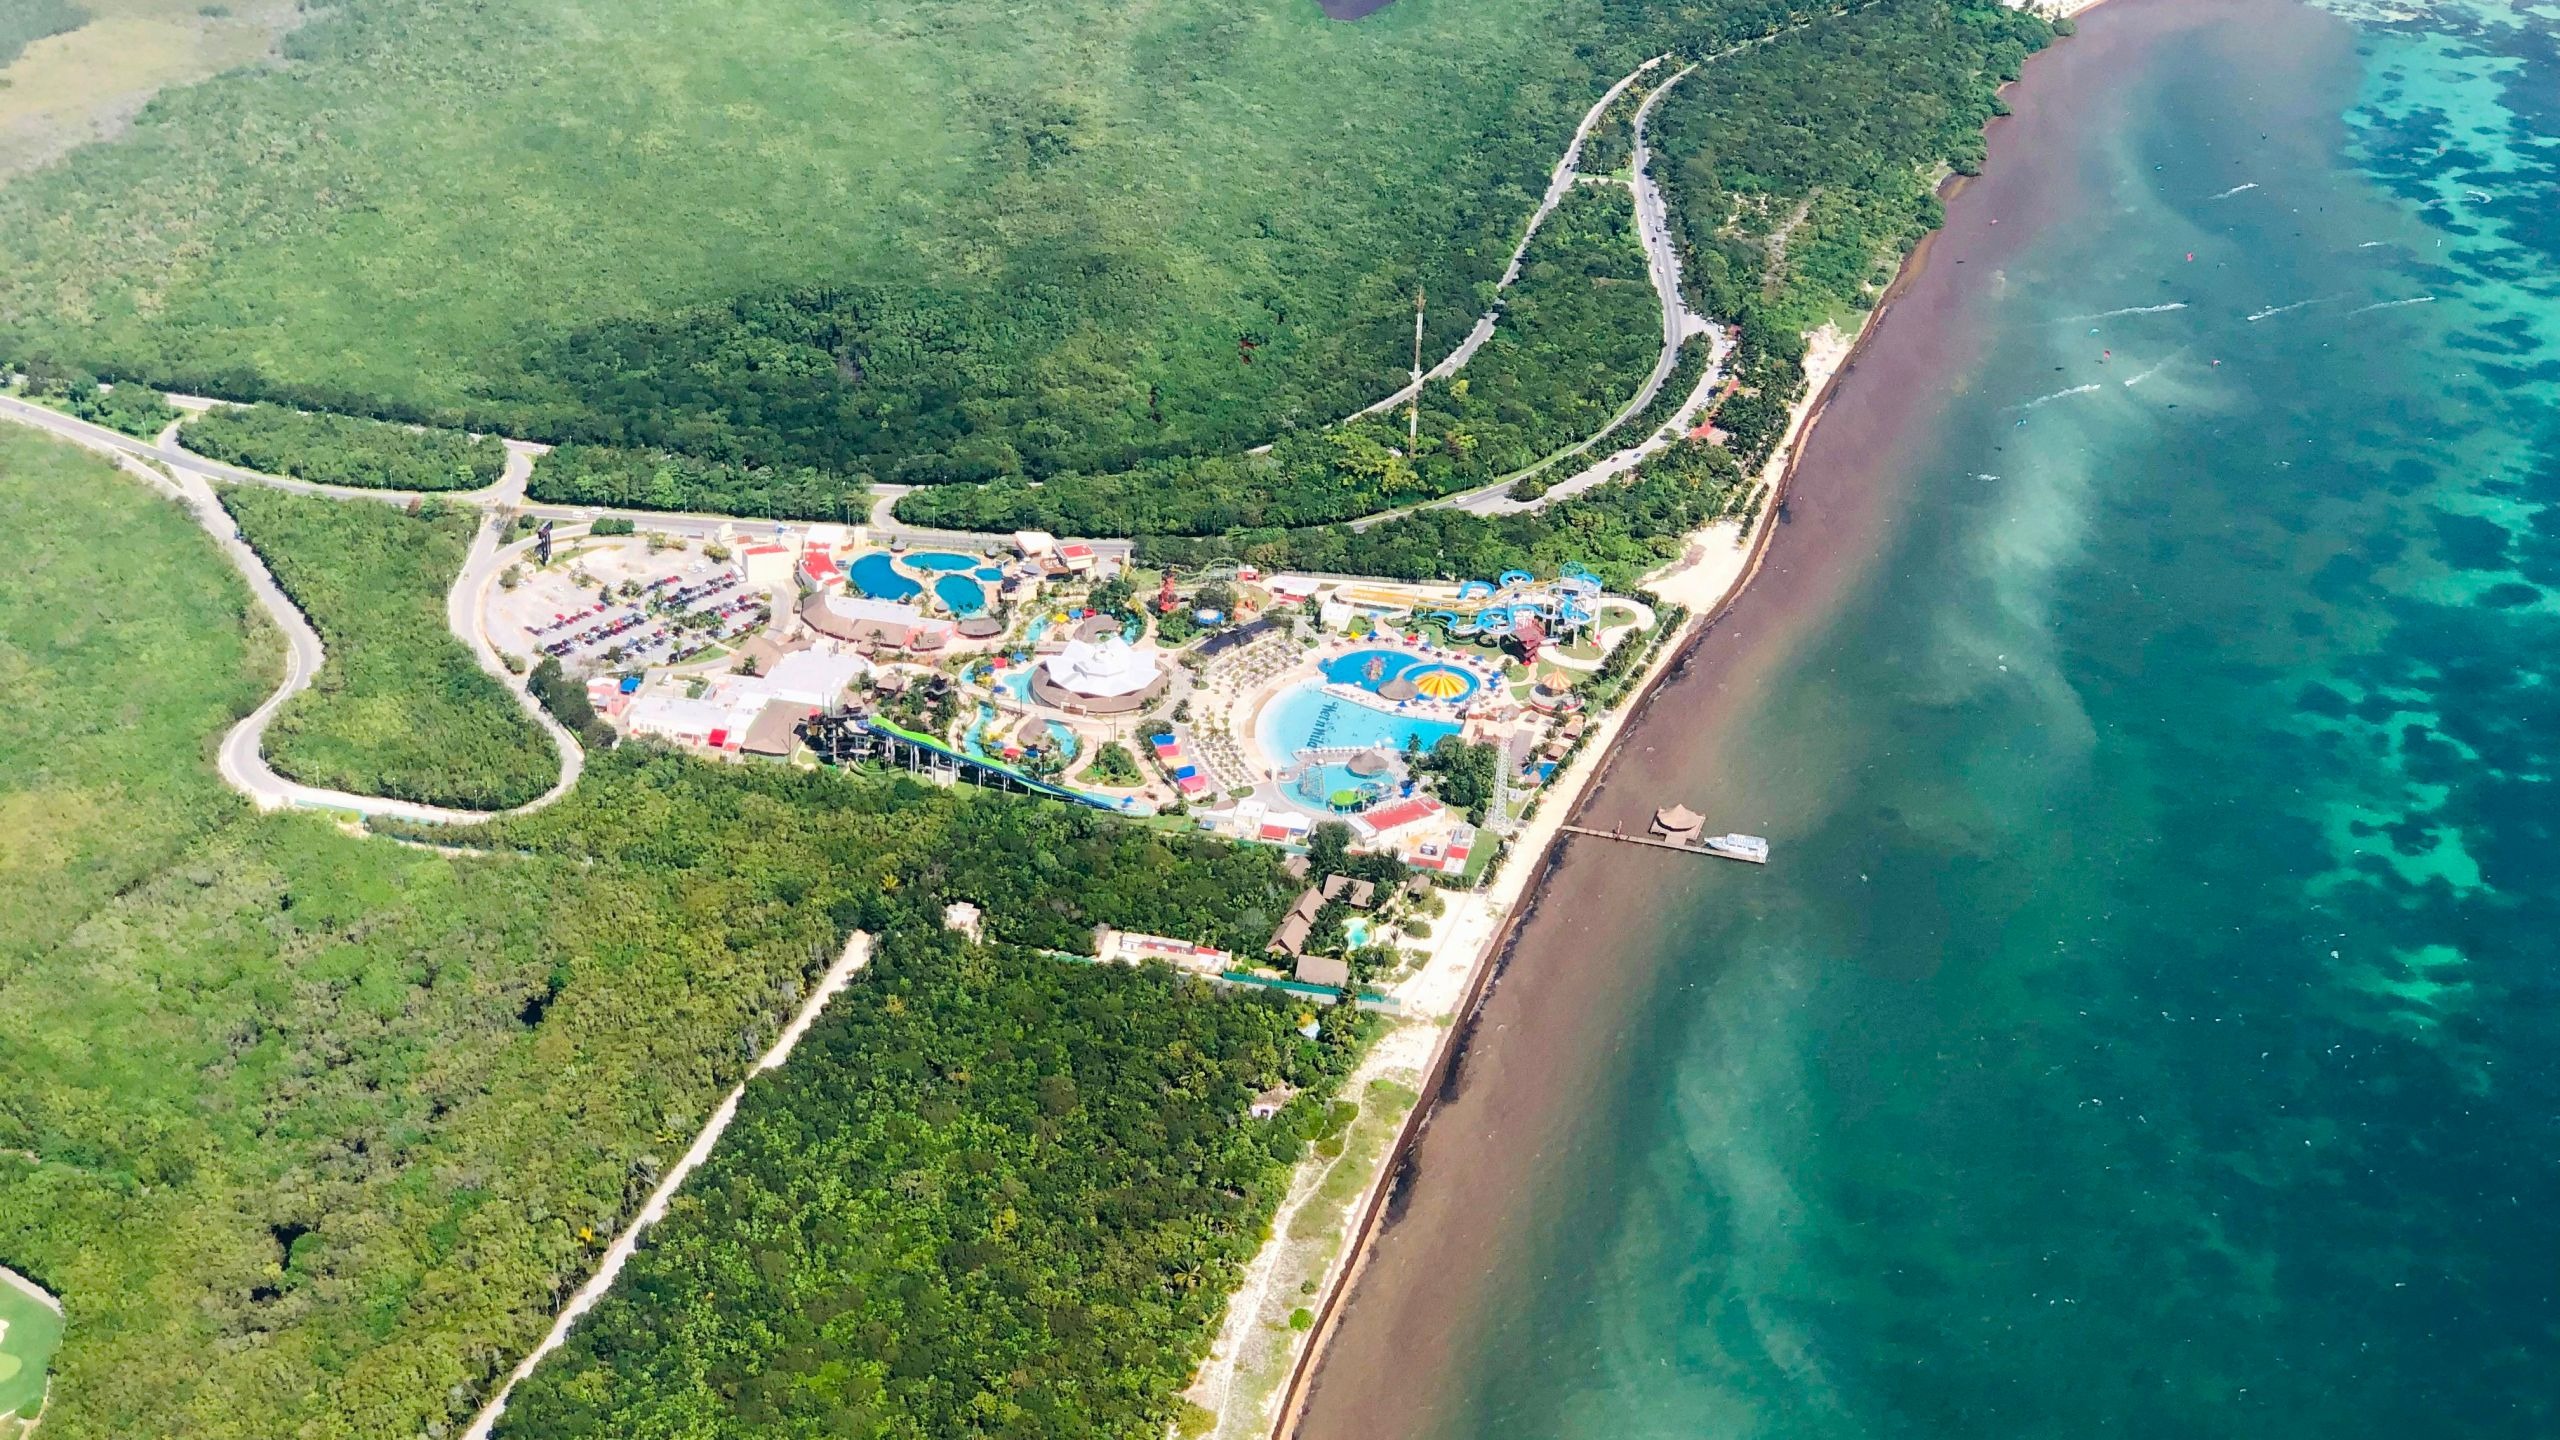 An aerial shot shows a view of a resort in Cancun, Mexico on Feb. 17, 2019 in this file photo. (Credit: DANIEL SLIM/AFP/Getty Images)